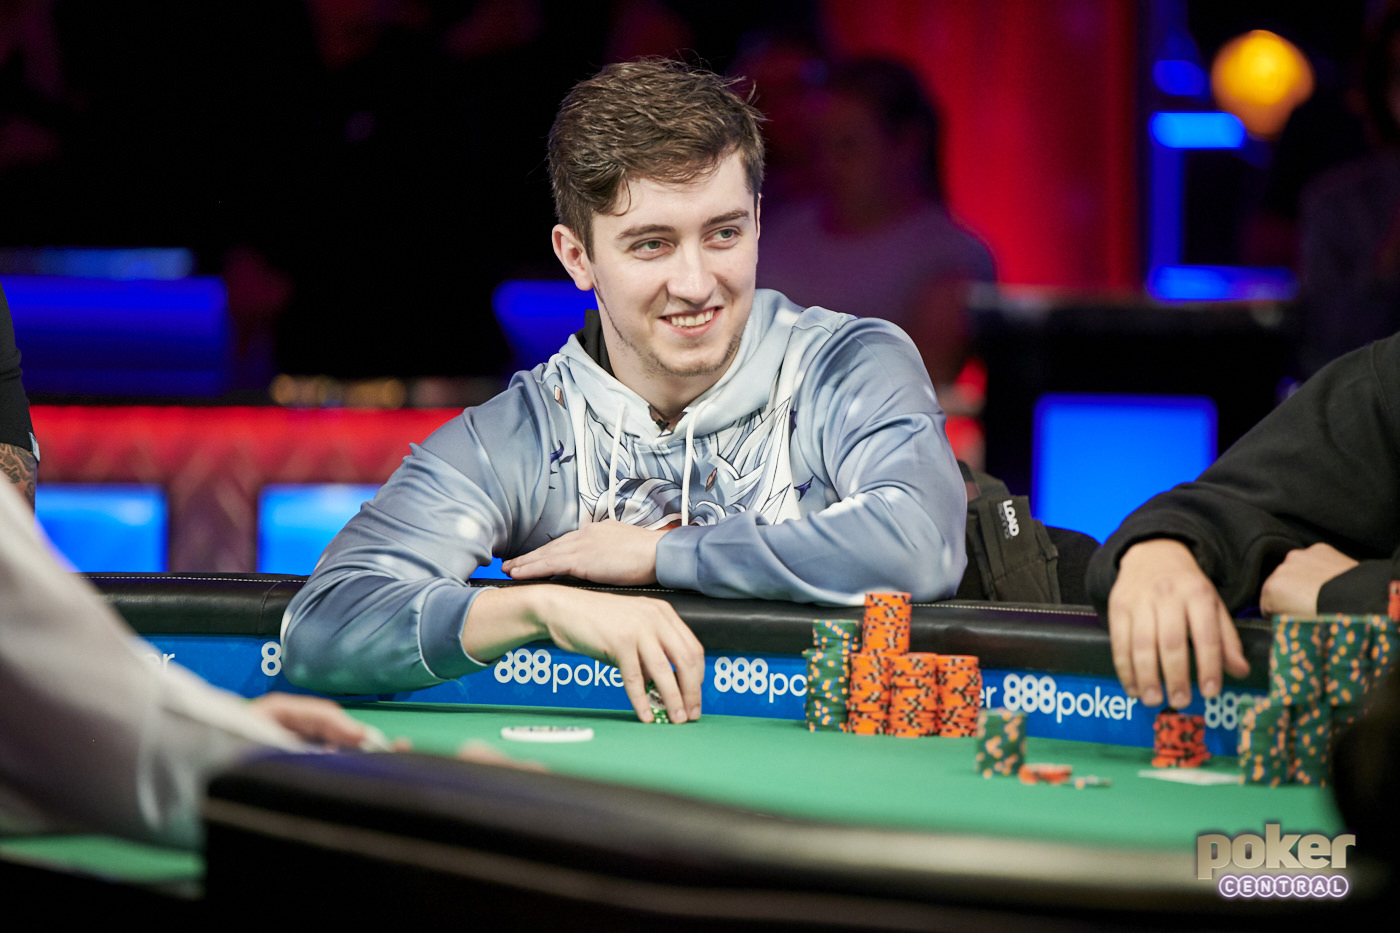 Ali Imsirovic was all smiles at the first big final table of the 2019 WSOP.